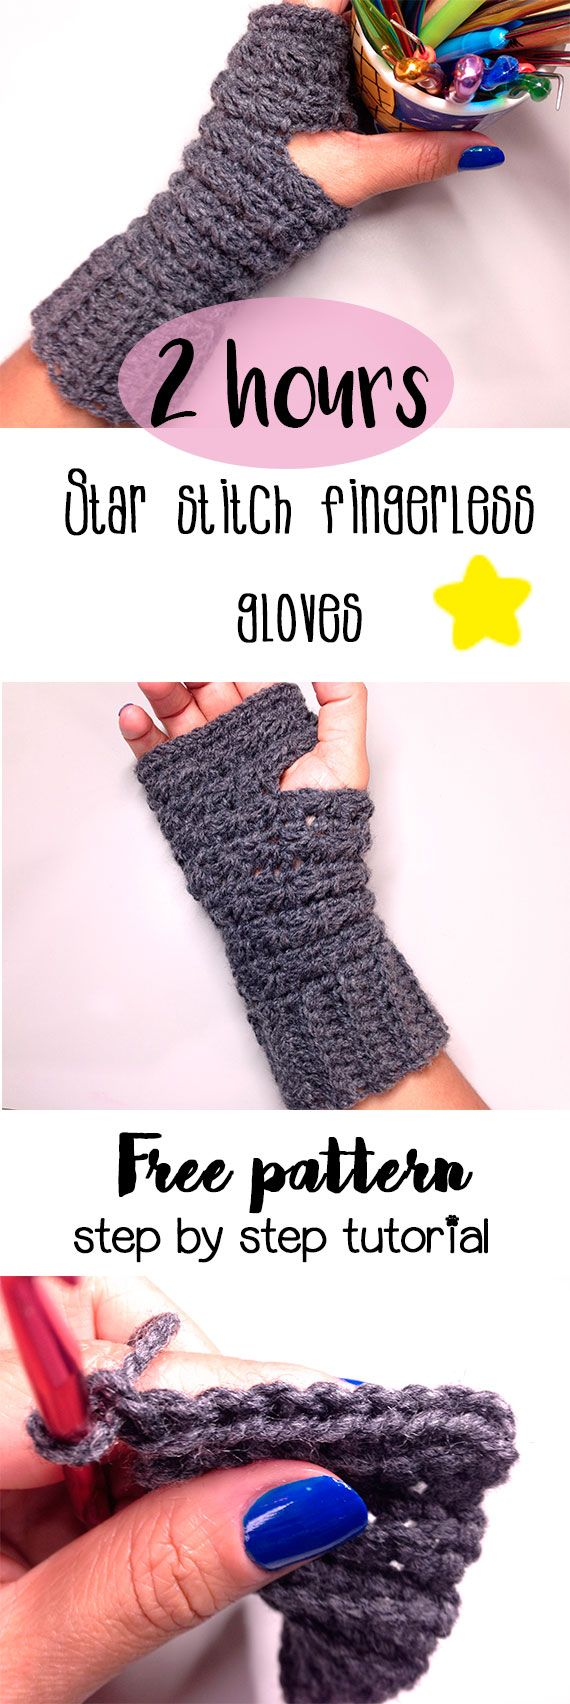 Star stitch fingerless gloves free pattern blogger crochet star stitch fingerless gloves free pattern bankloansurffo Choice Image